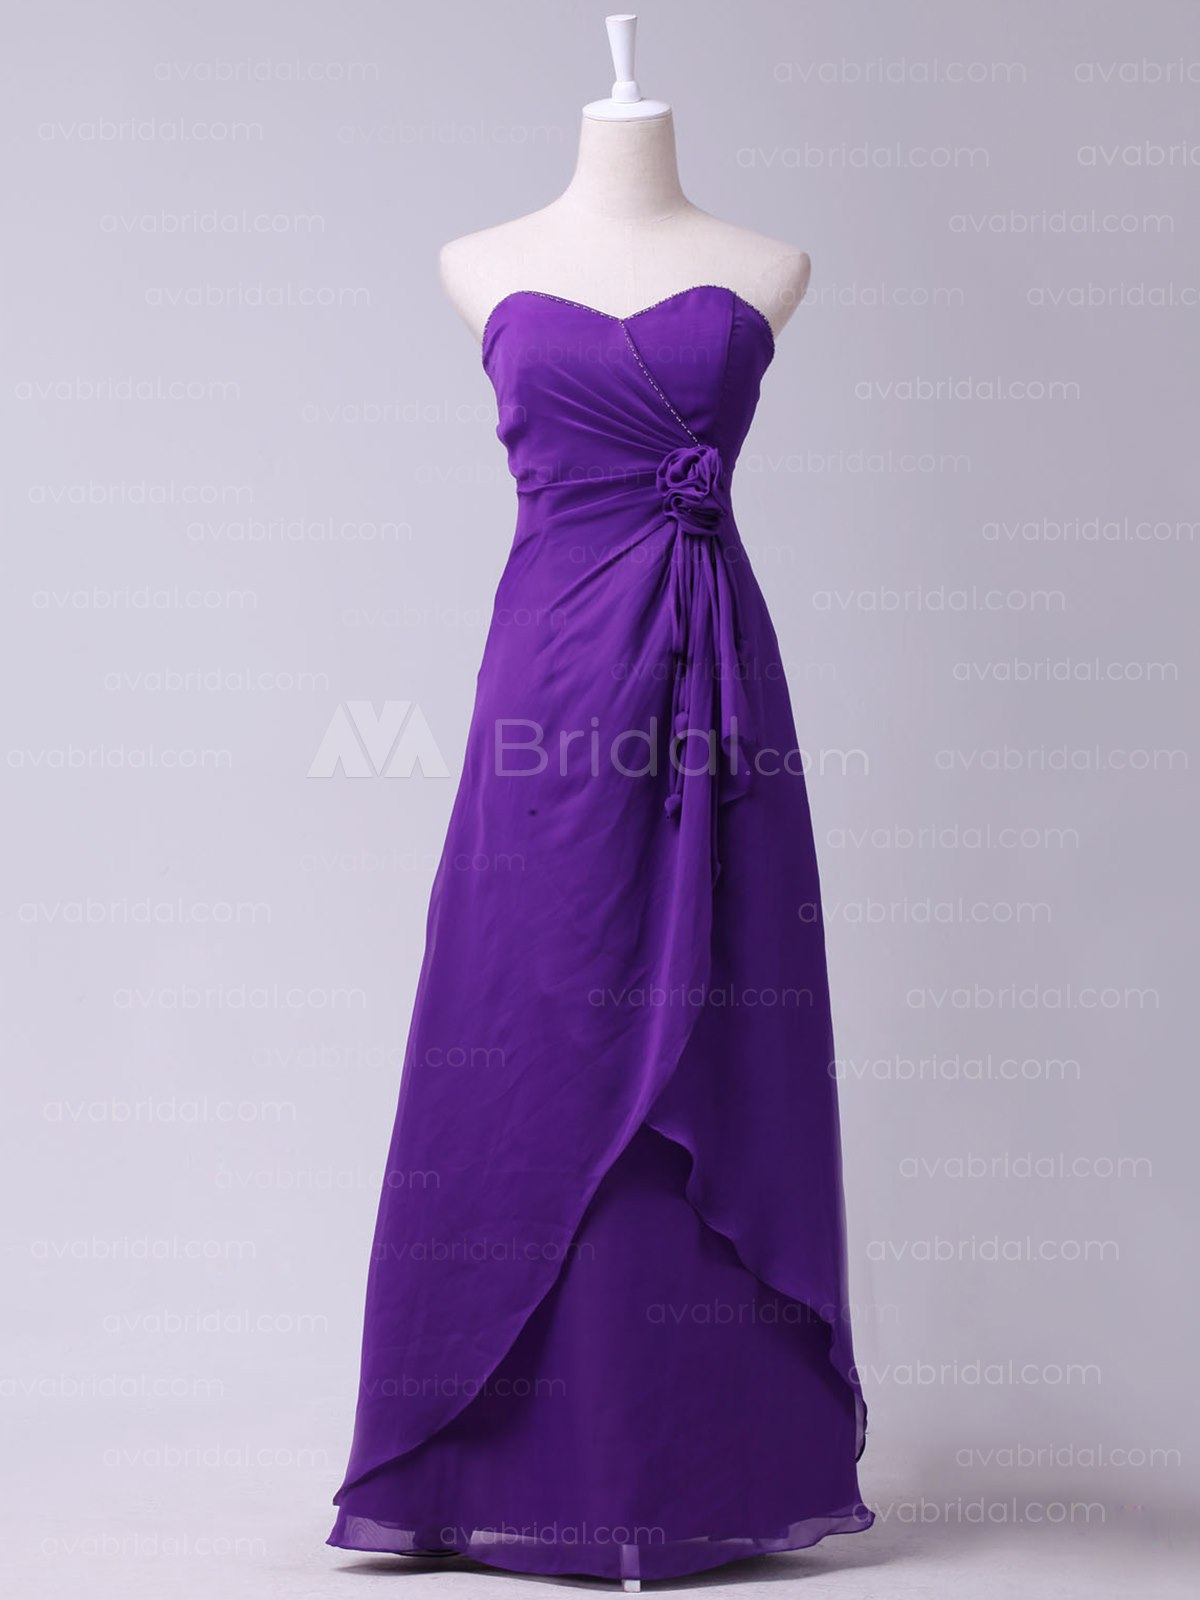 Chic Beaded Chiffon Bridesmaid Dress B456-Front